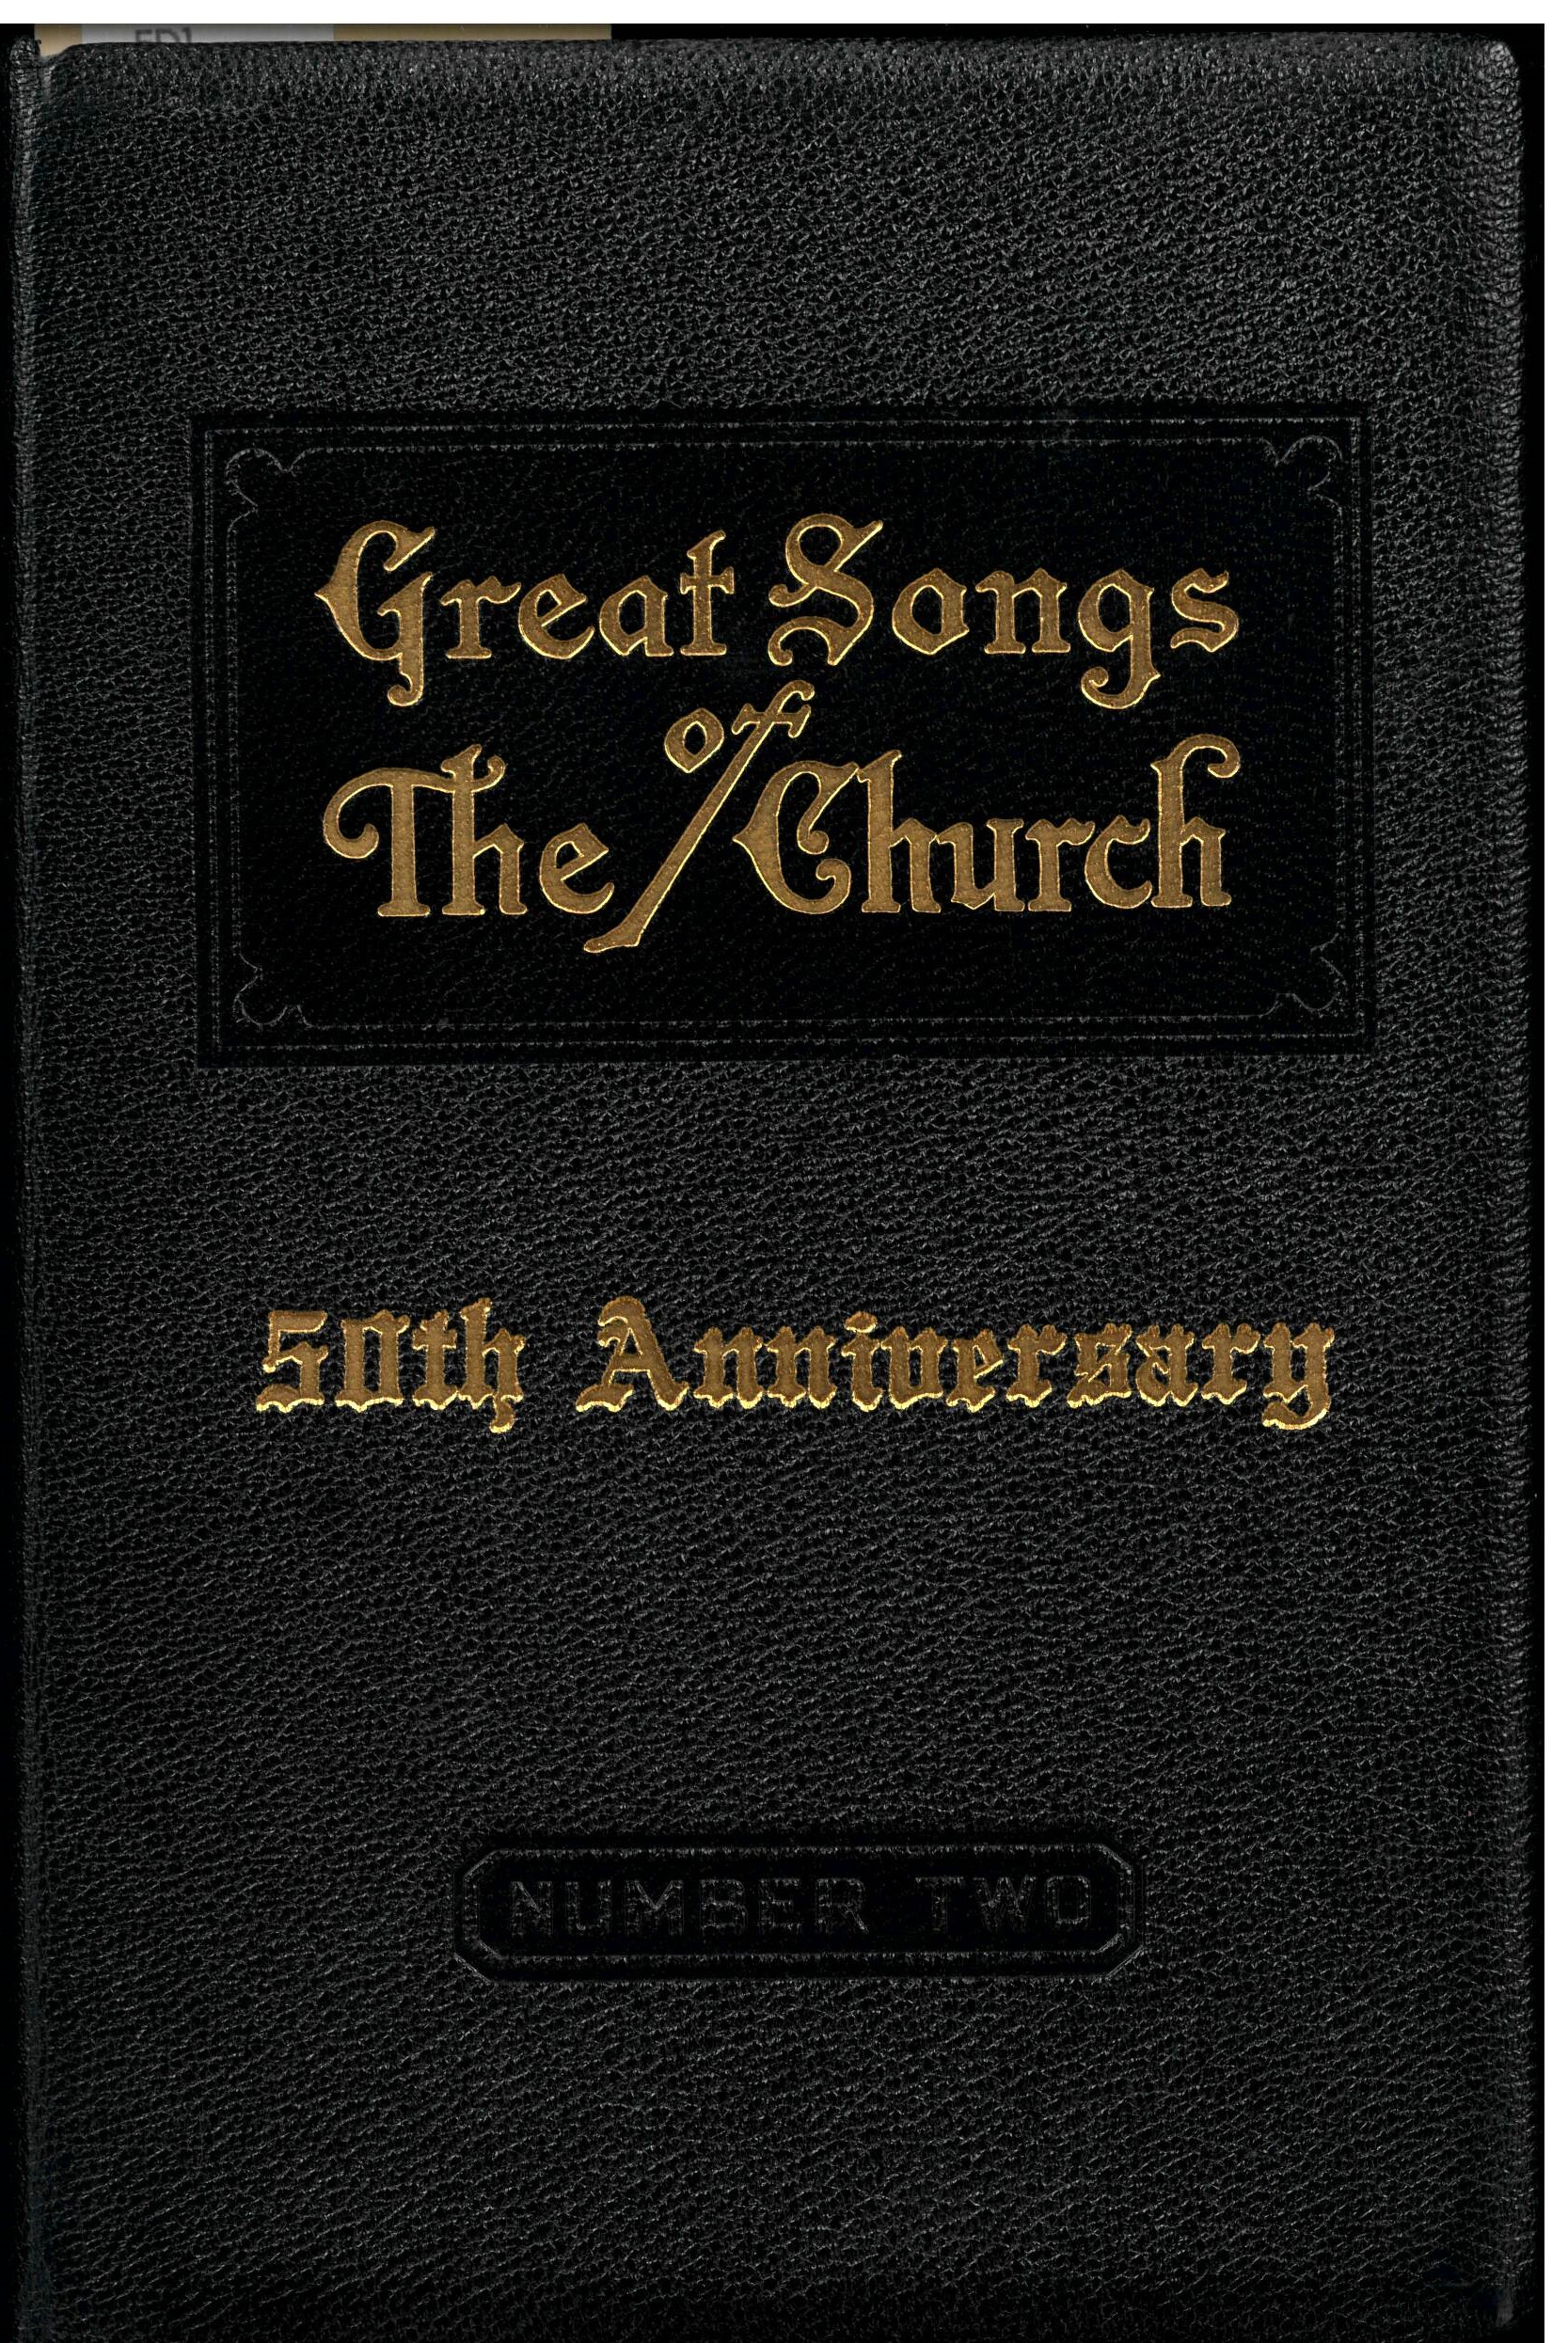 Great Songs of the Church, 50th Anniversary Edition.